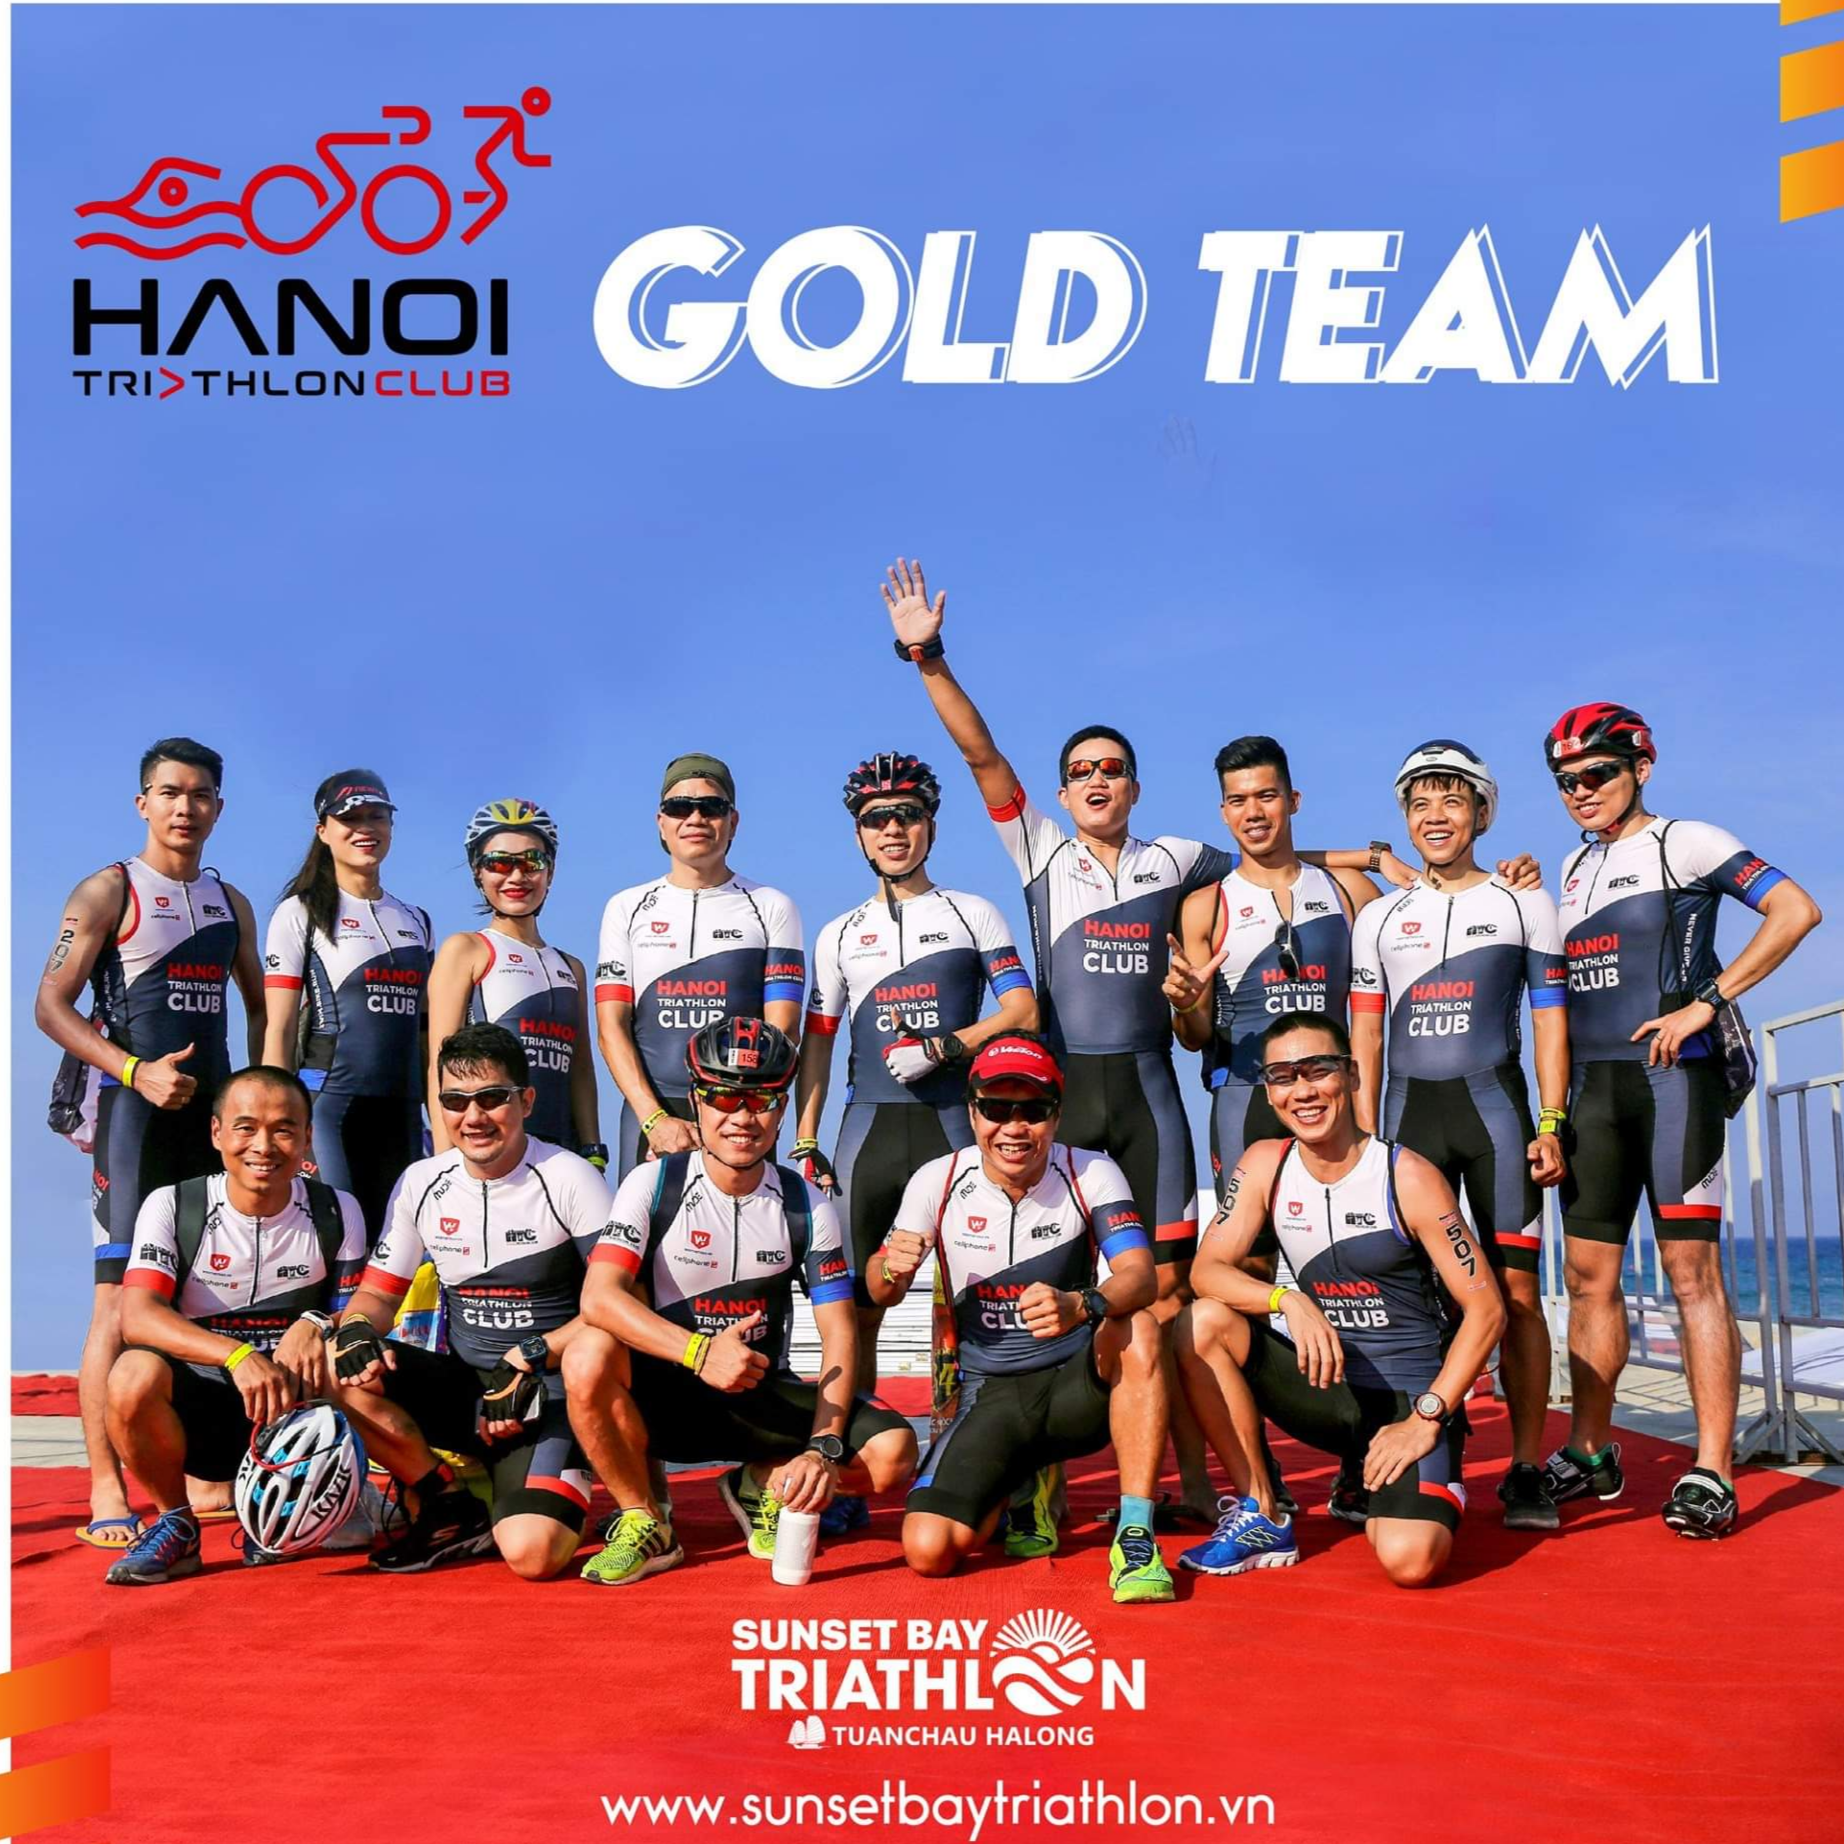 Hanoi Triathlon Club